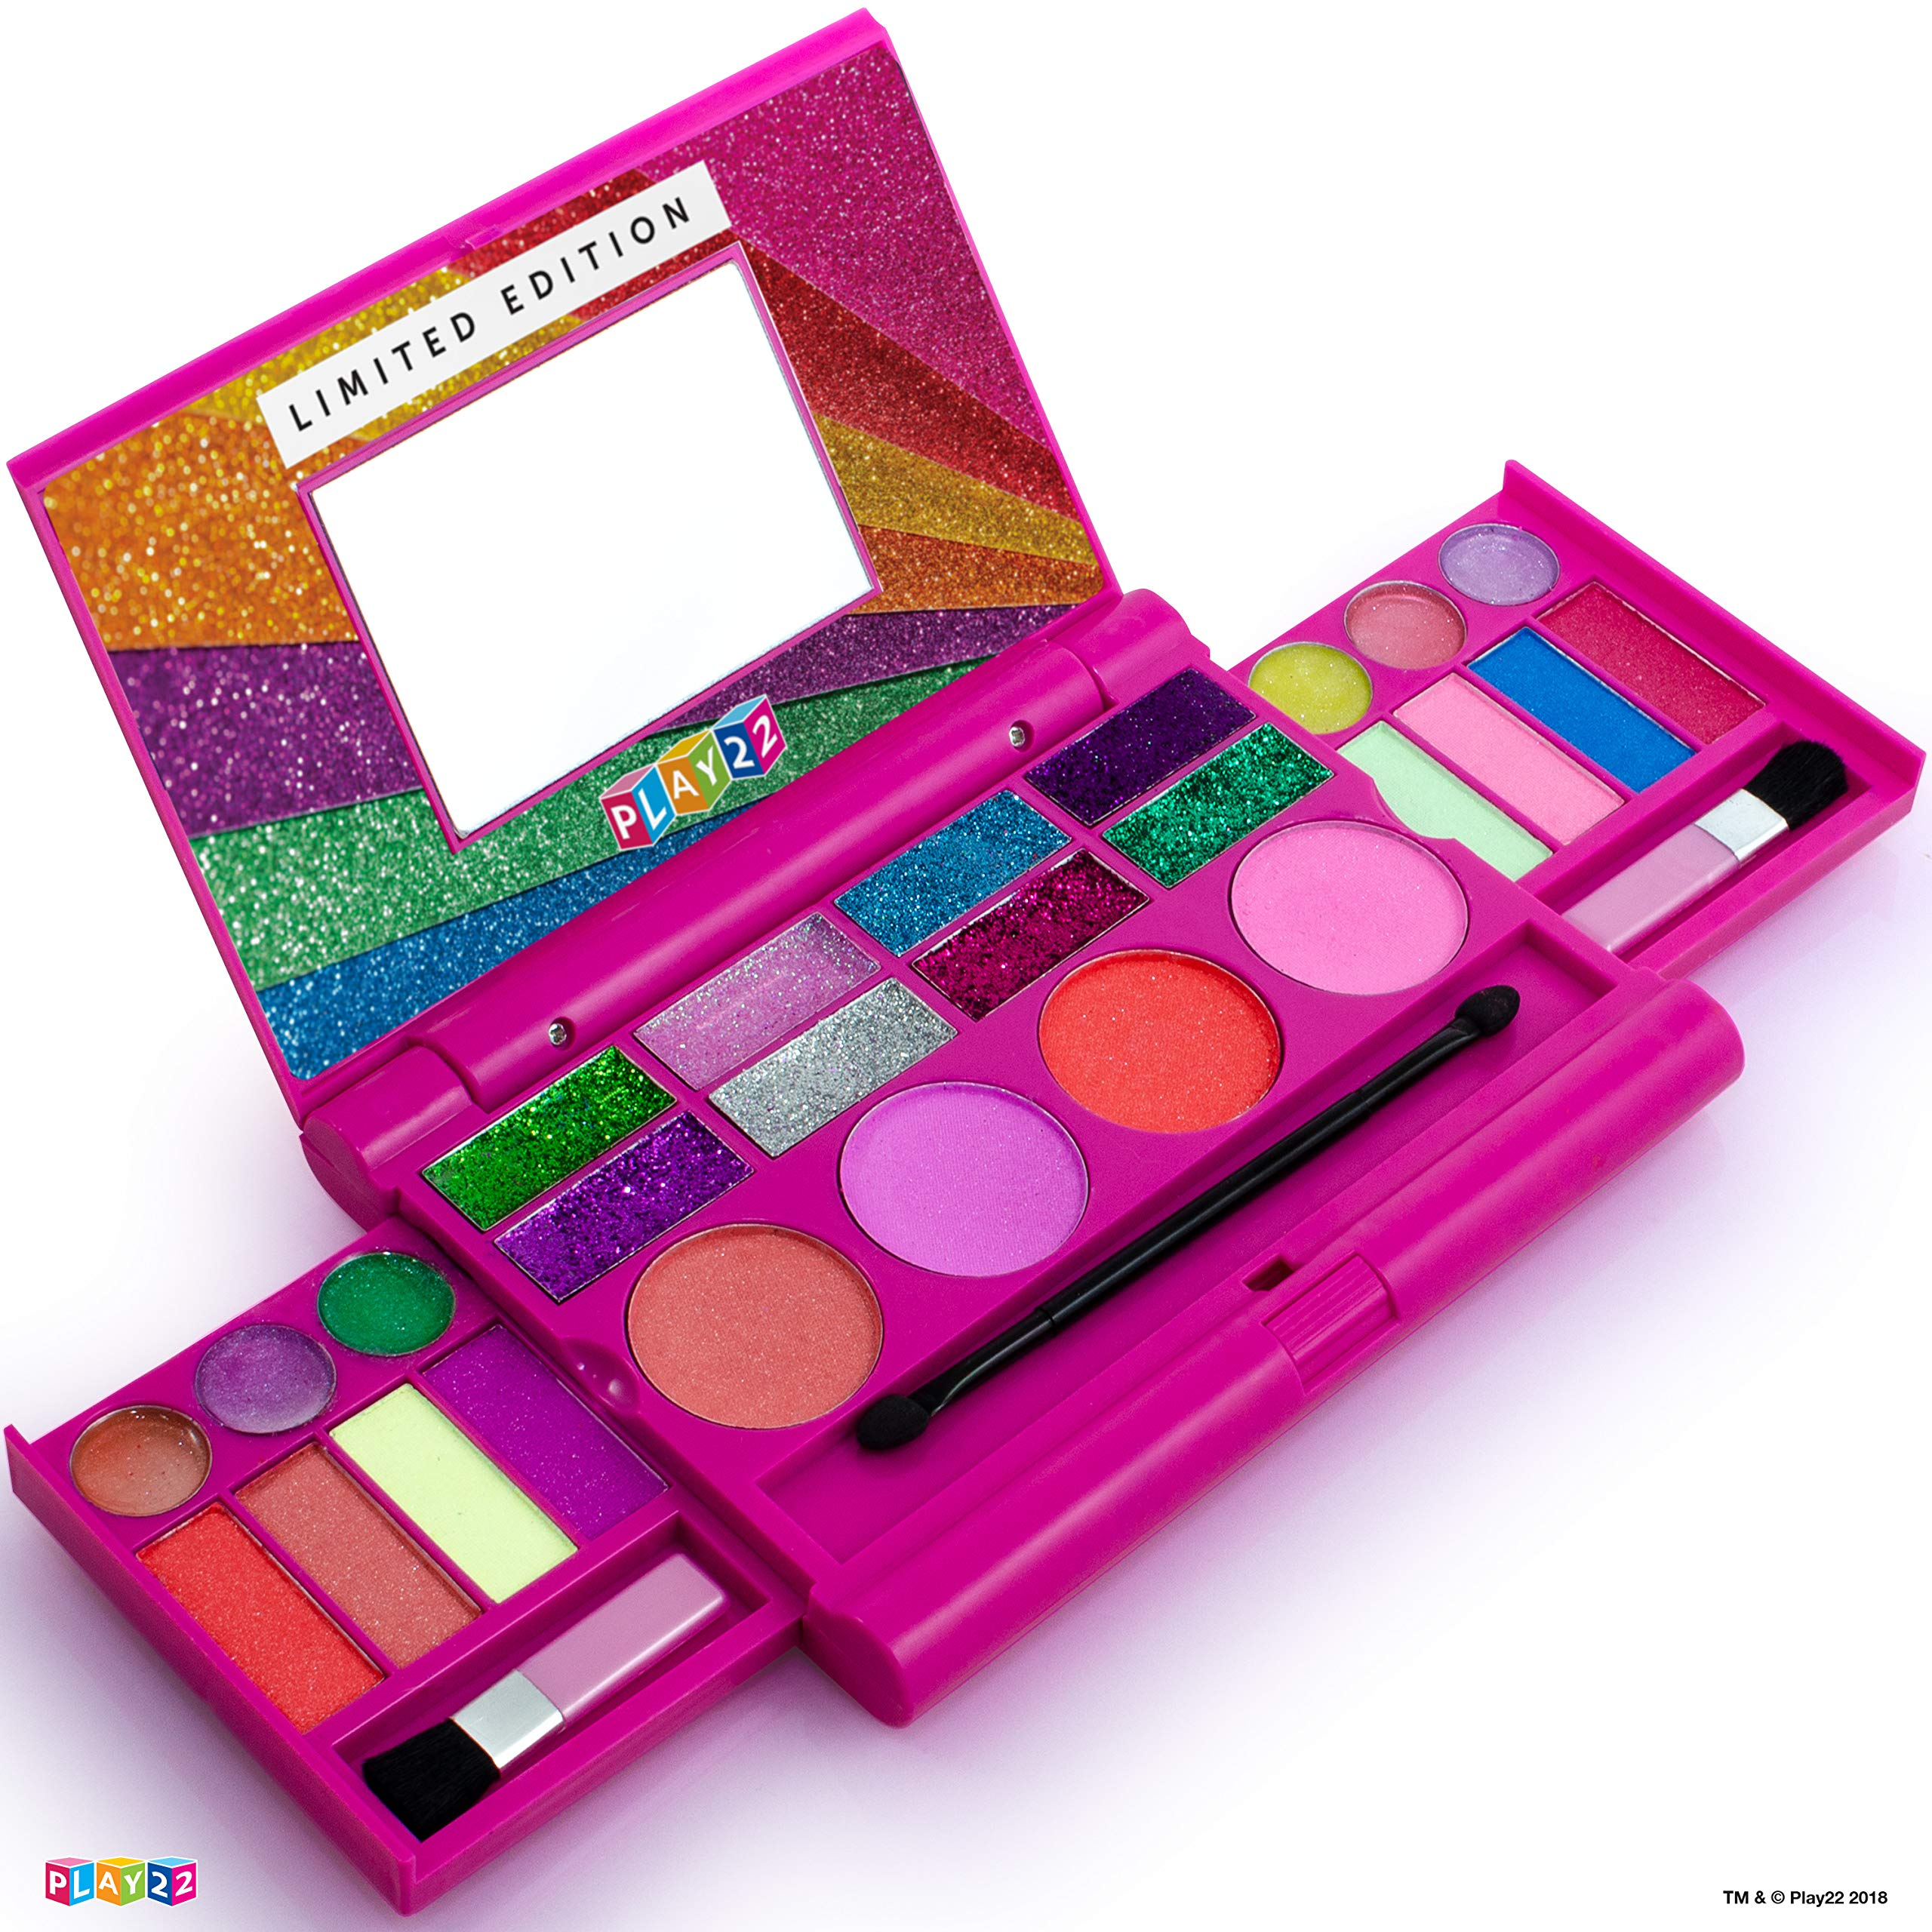 Kids Makeup Palette For Girl - Real Washable Kids Makeup - My First Princess Make Up Set Include 4 Blushes, 8 Eyeshadows, 6 Lip Glosses, 8 Glitter Glaze, Mirror, Brushes, Eyeshadow Wand - Best Gift by Play22